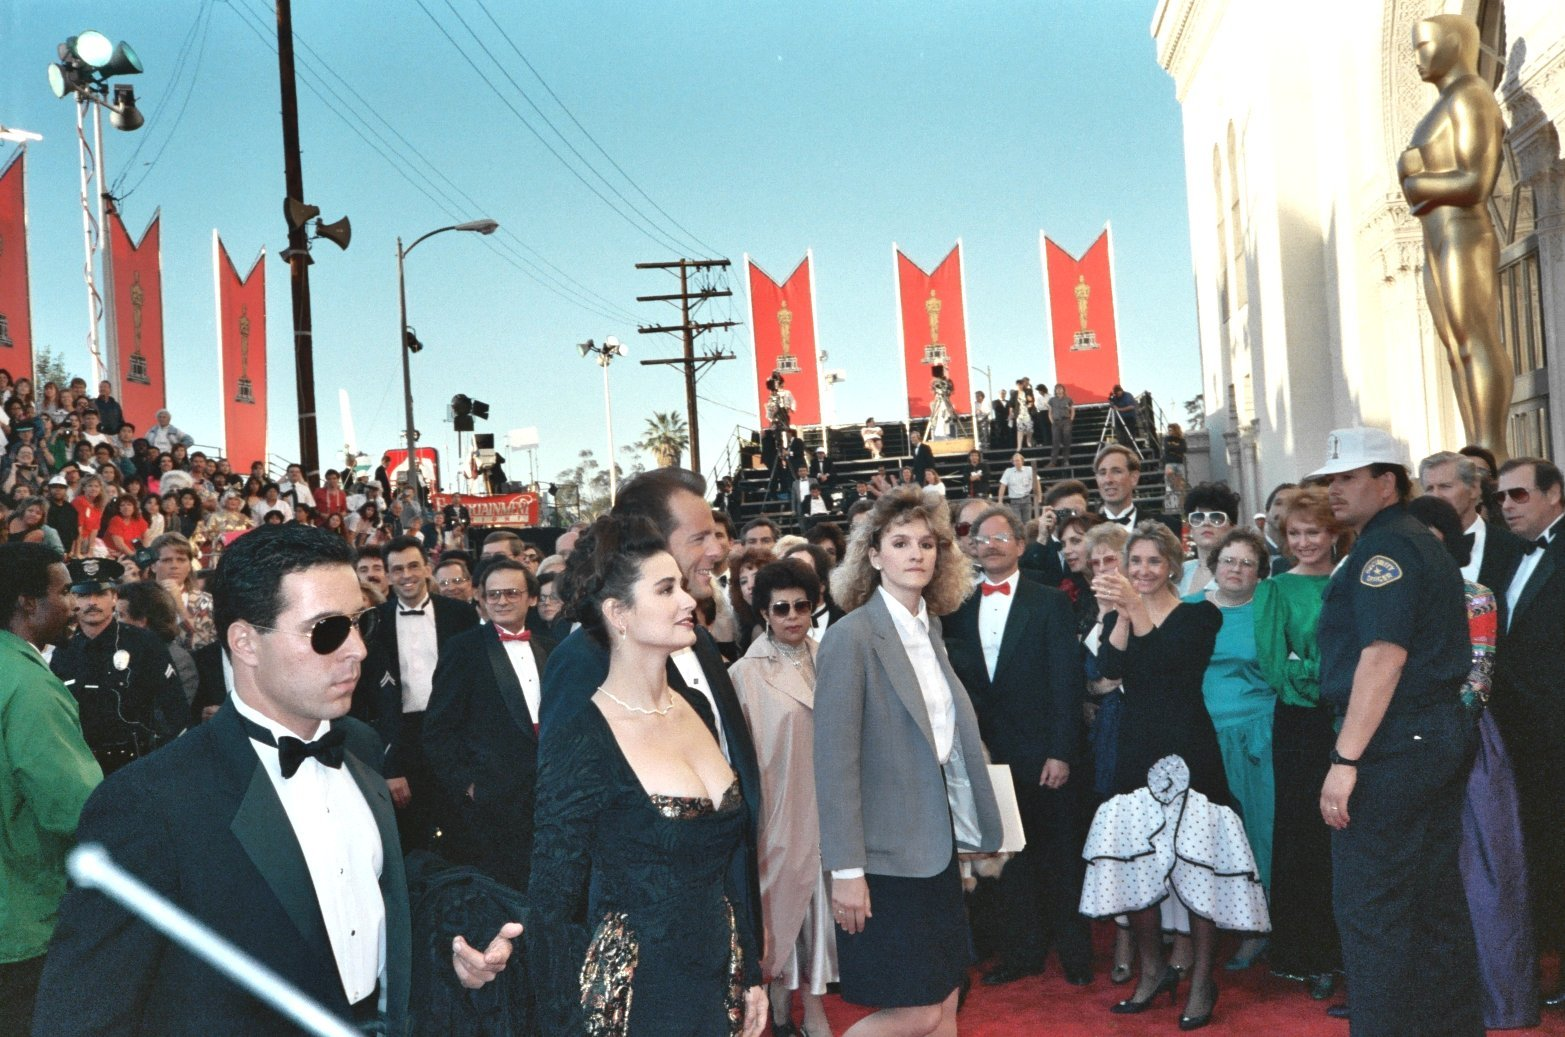 Demi Moore and Bruce Willis at the 61st Annual Academy Awards 1989